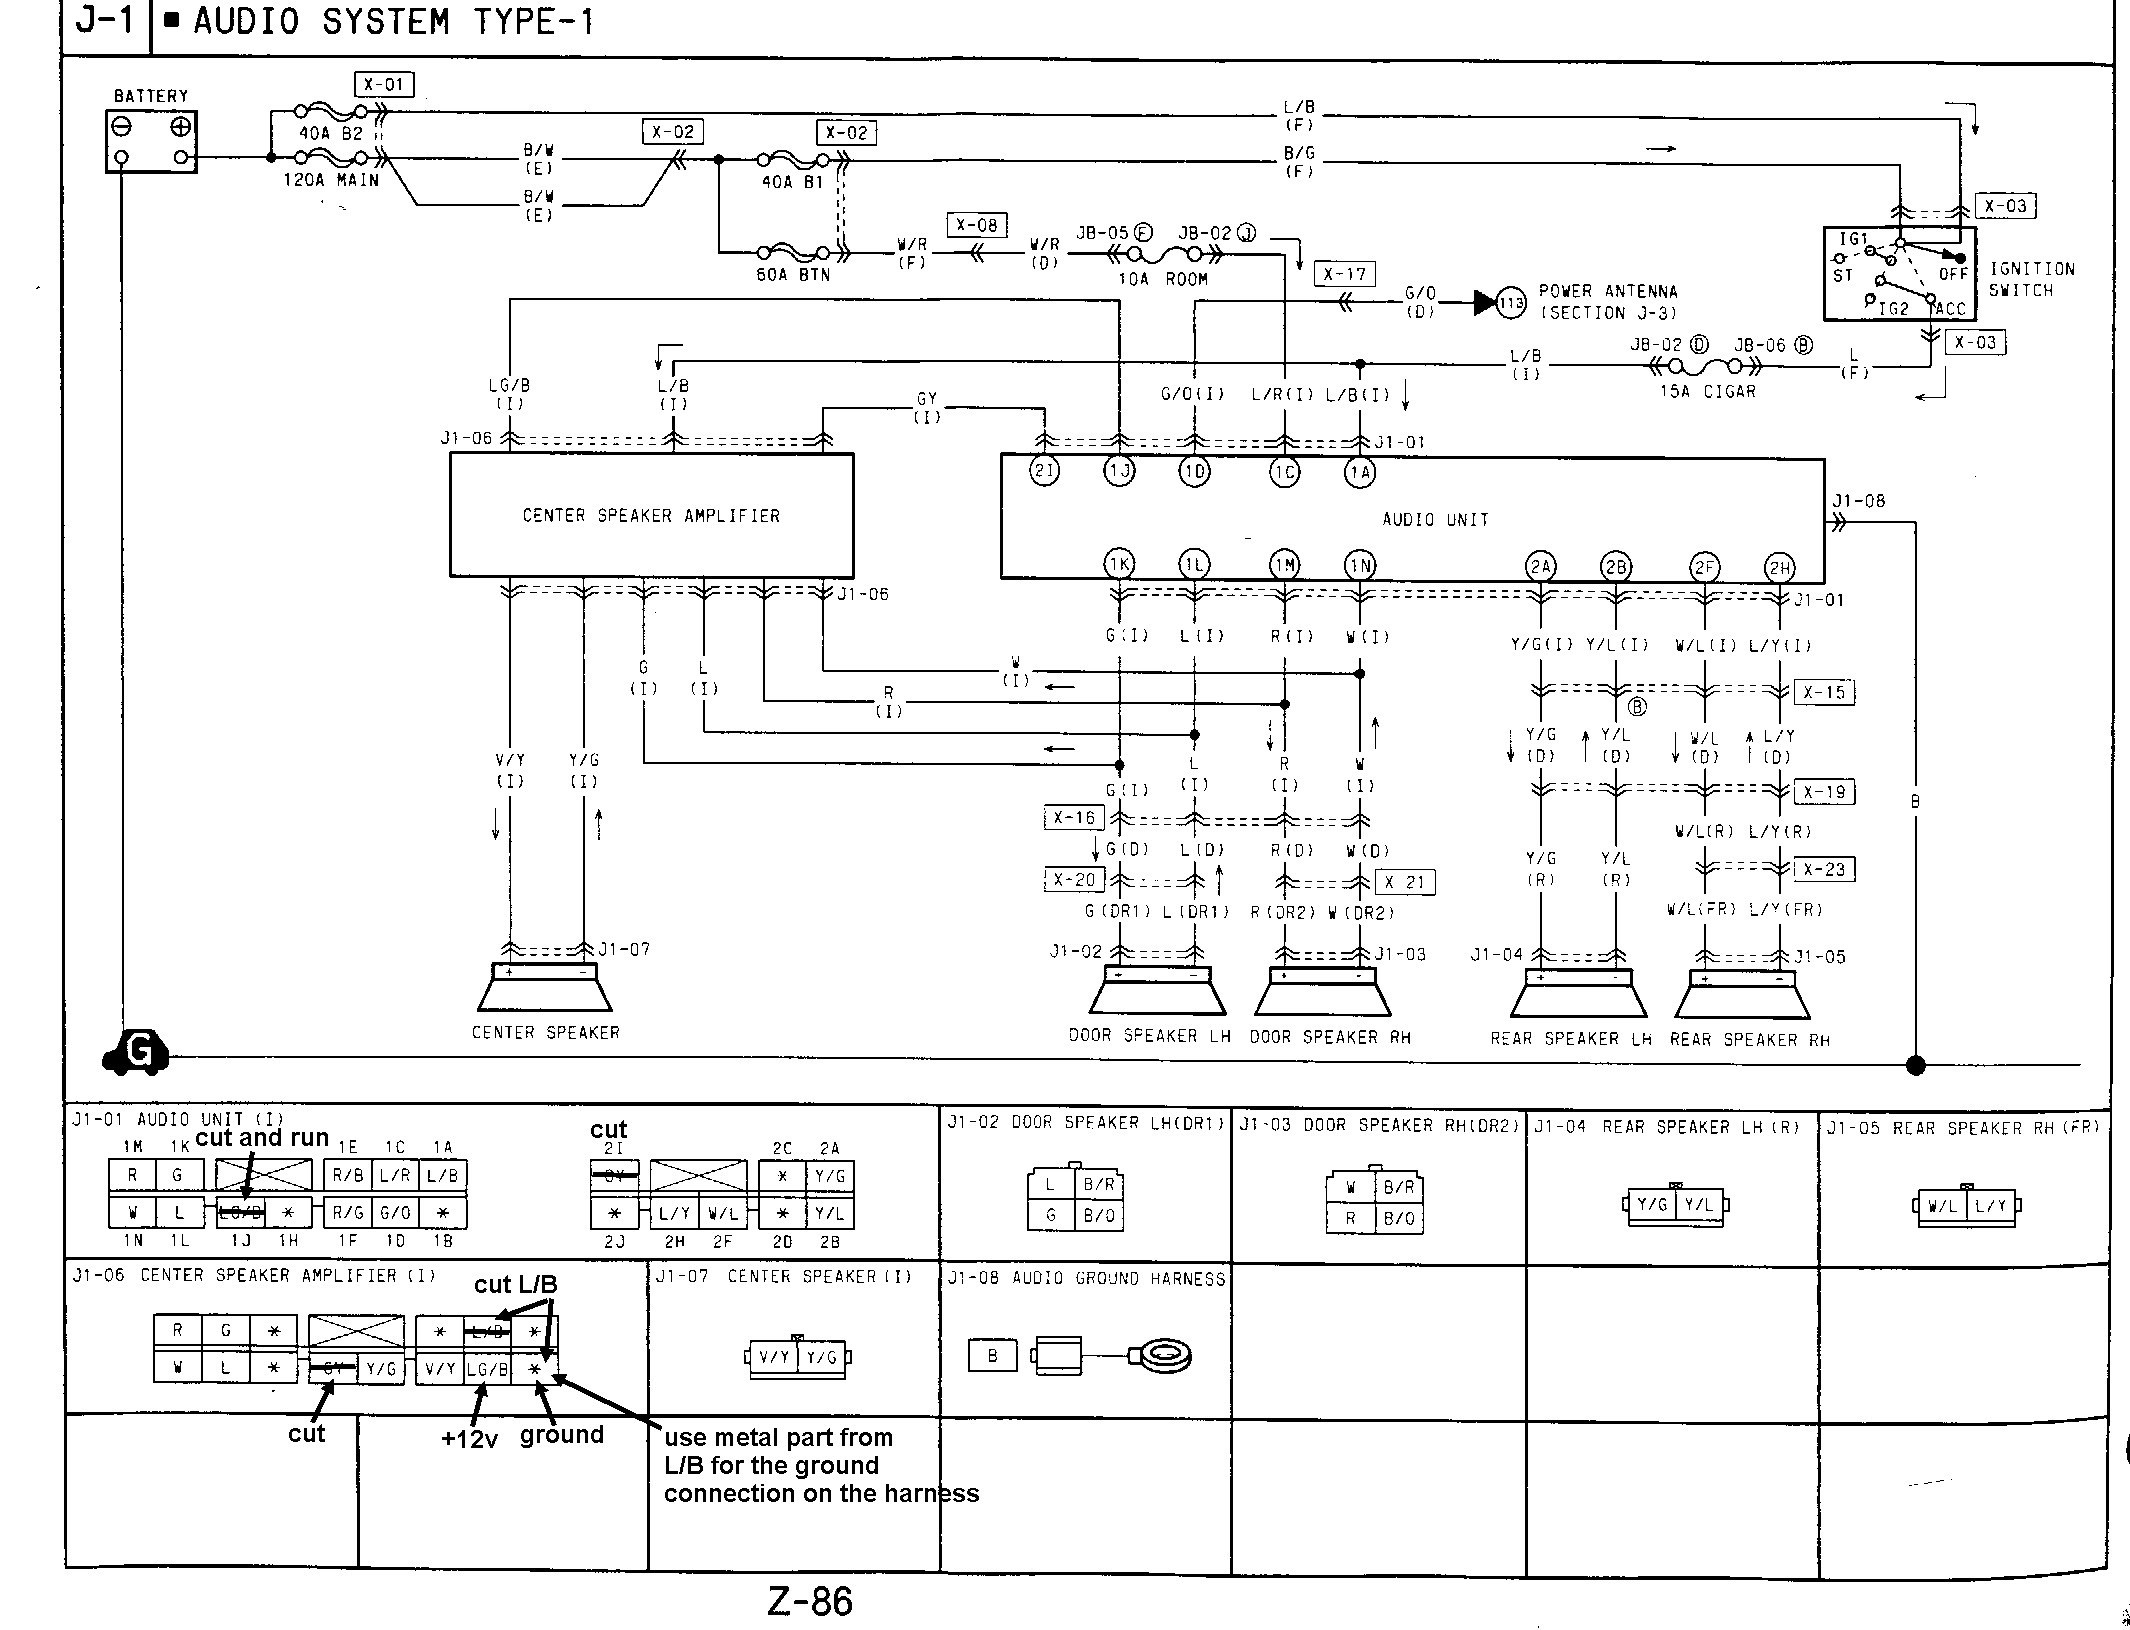 bose acoustimass 5 series ii wiring diagram Collection-cable wiring diagrams bose system electrical drawing wiring diagram u2022 rh g news co 12-p